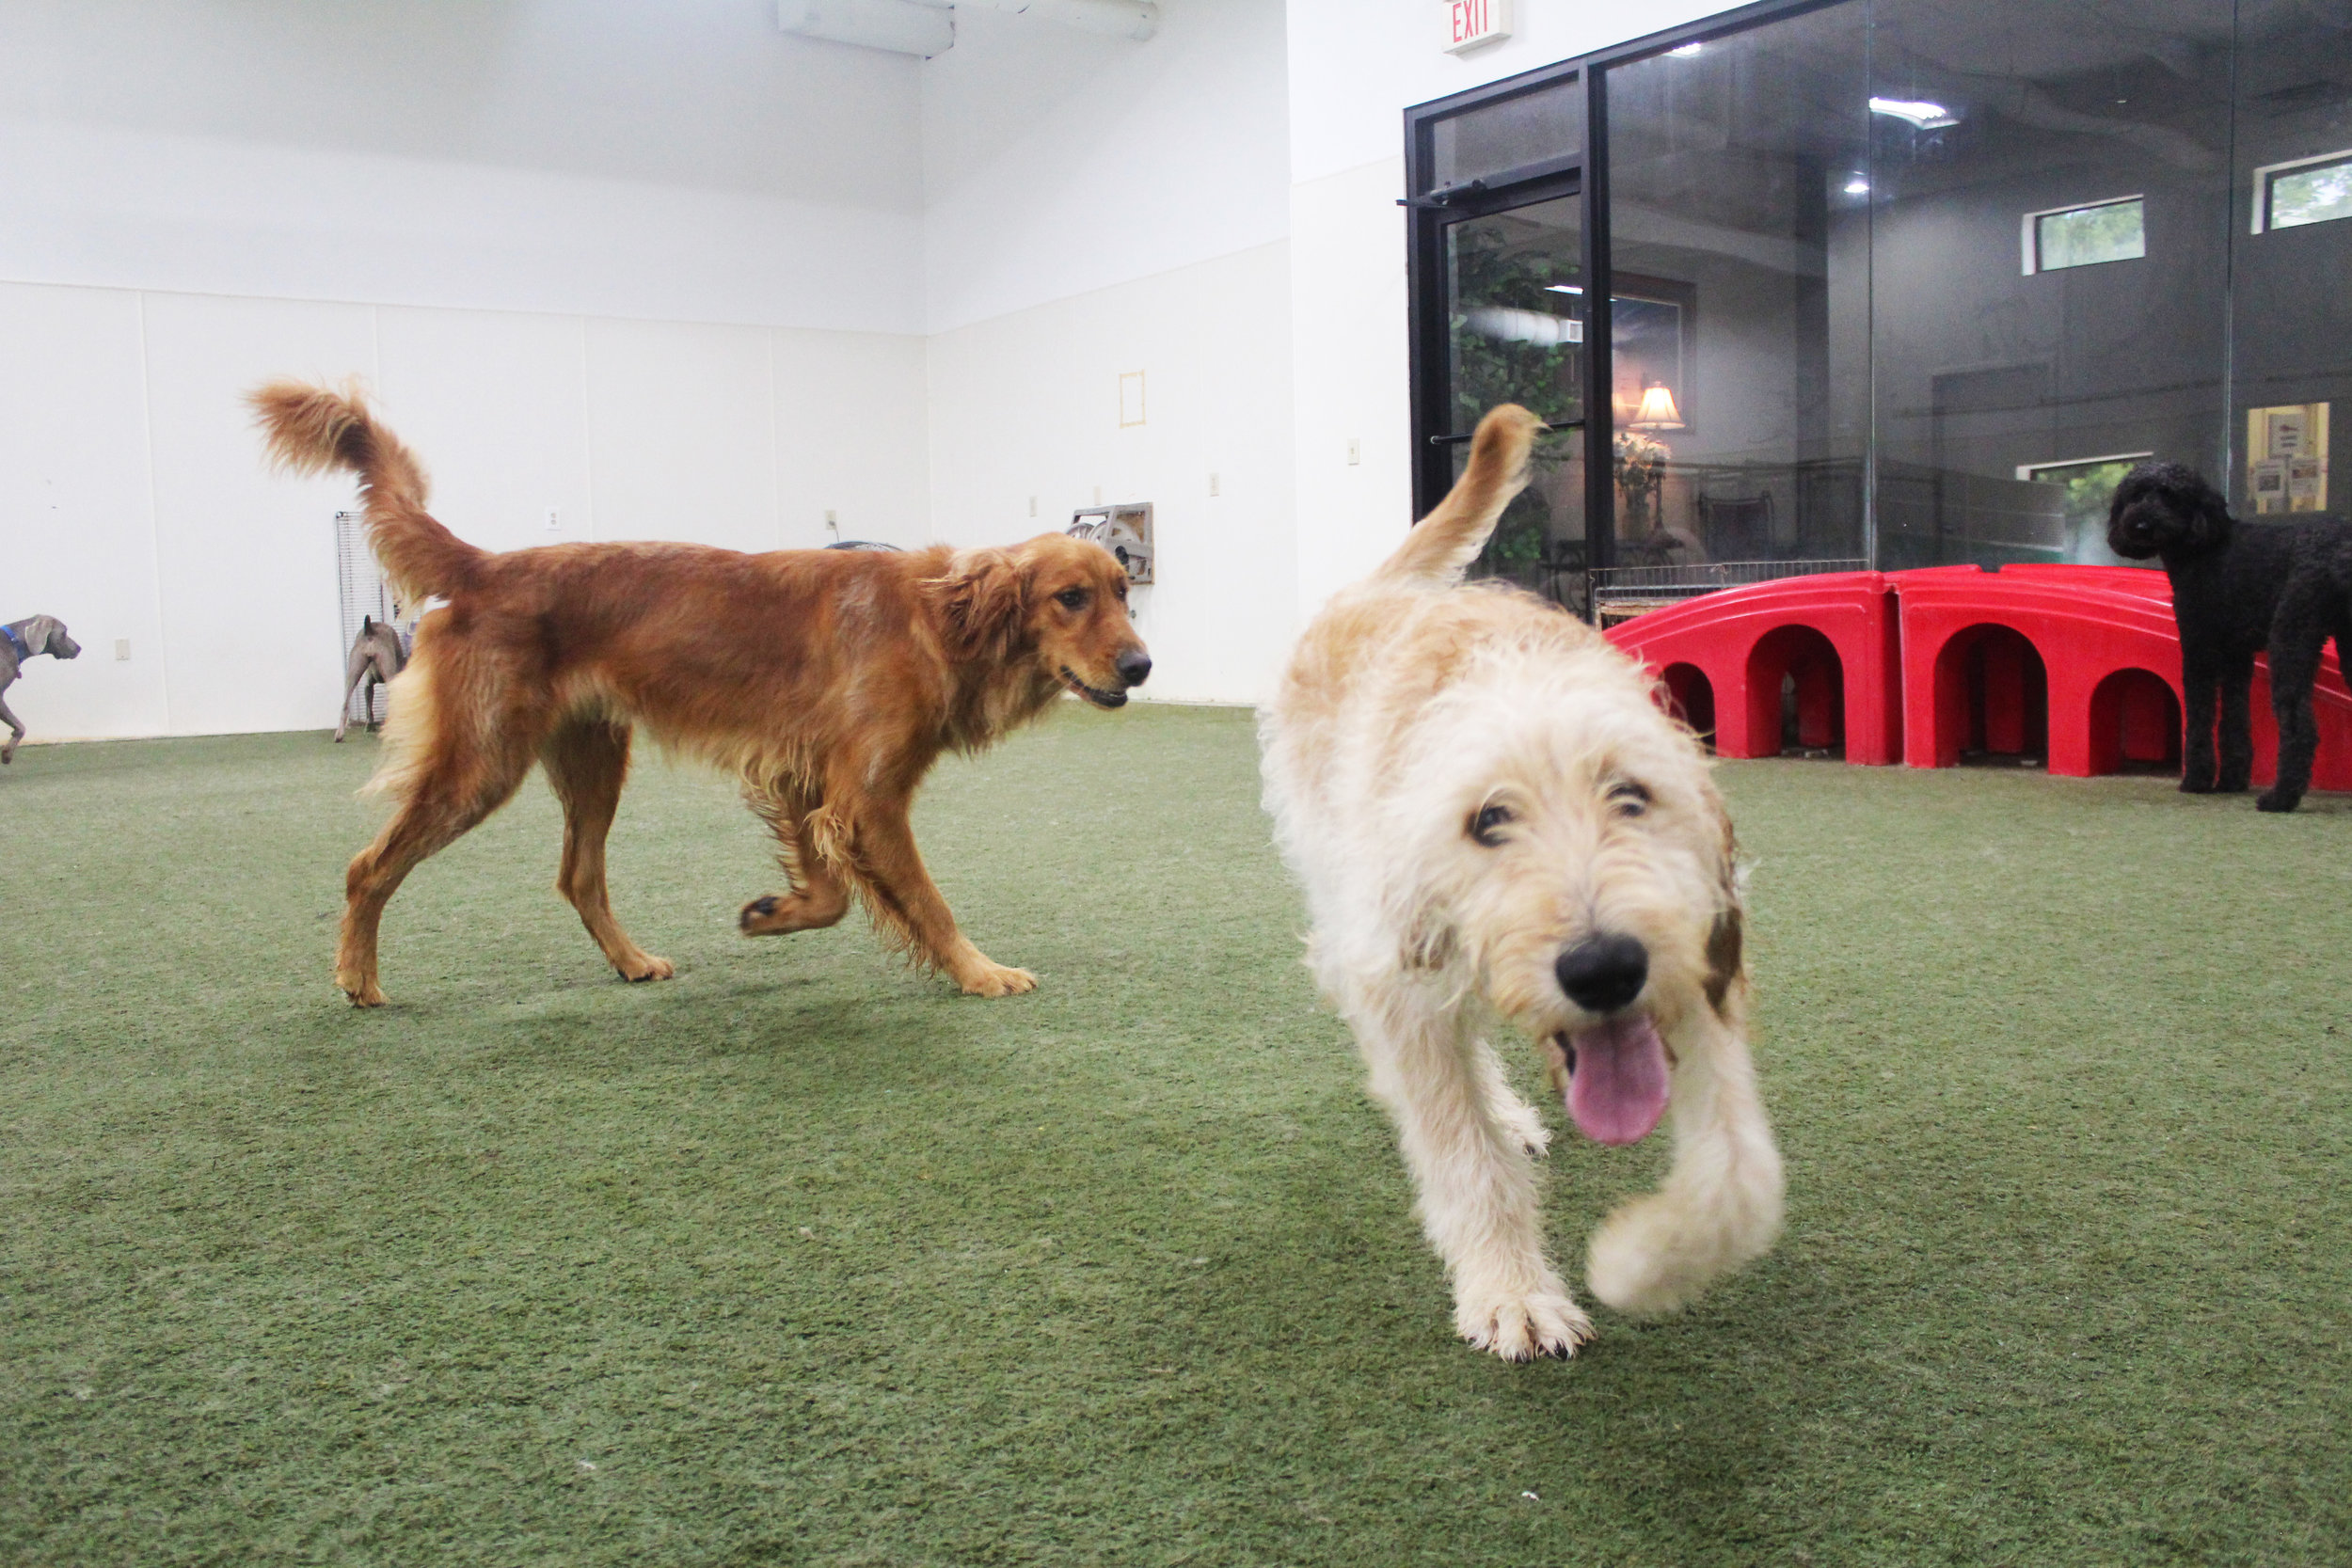 Charlie is a great dog to have come for doggy daycare and dog boarding. All of our staff love him and, since Charlie loves everyone, he loves us too. We just wish he could come in everyday to brighten our spirits and put us all in a great mood.